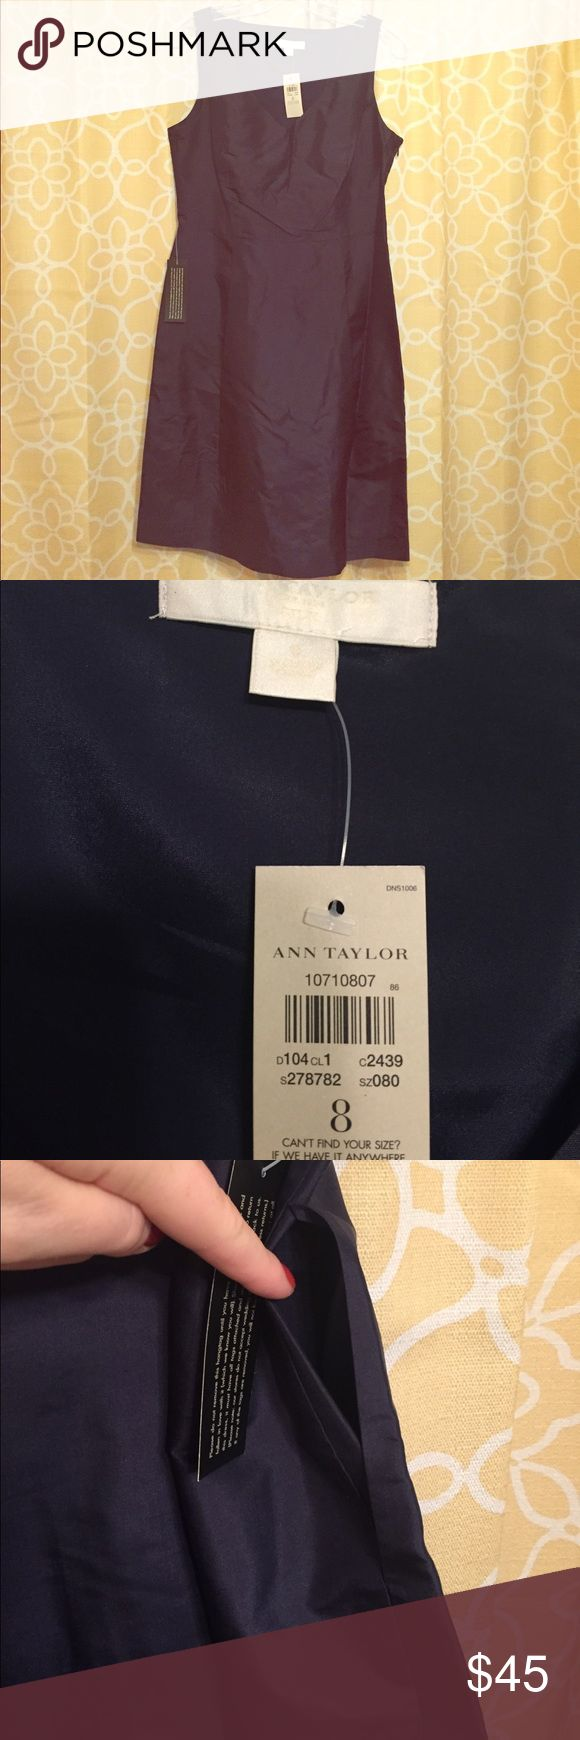 Ann Taylor Silk Dress Gorgeous navy blue silk dress with pockets. Brand new with tags, never worn. Also comes with a small shawl unopened. Smoke free home. Perfect to wear to a wedding this summer or a cocktail party! Ann Taylor Dresses Midi